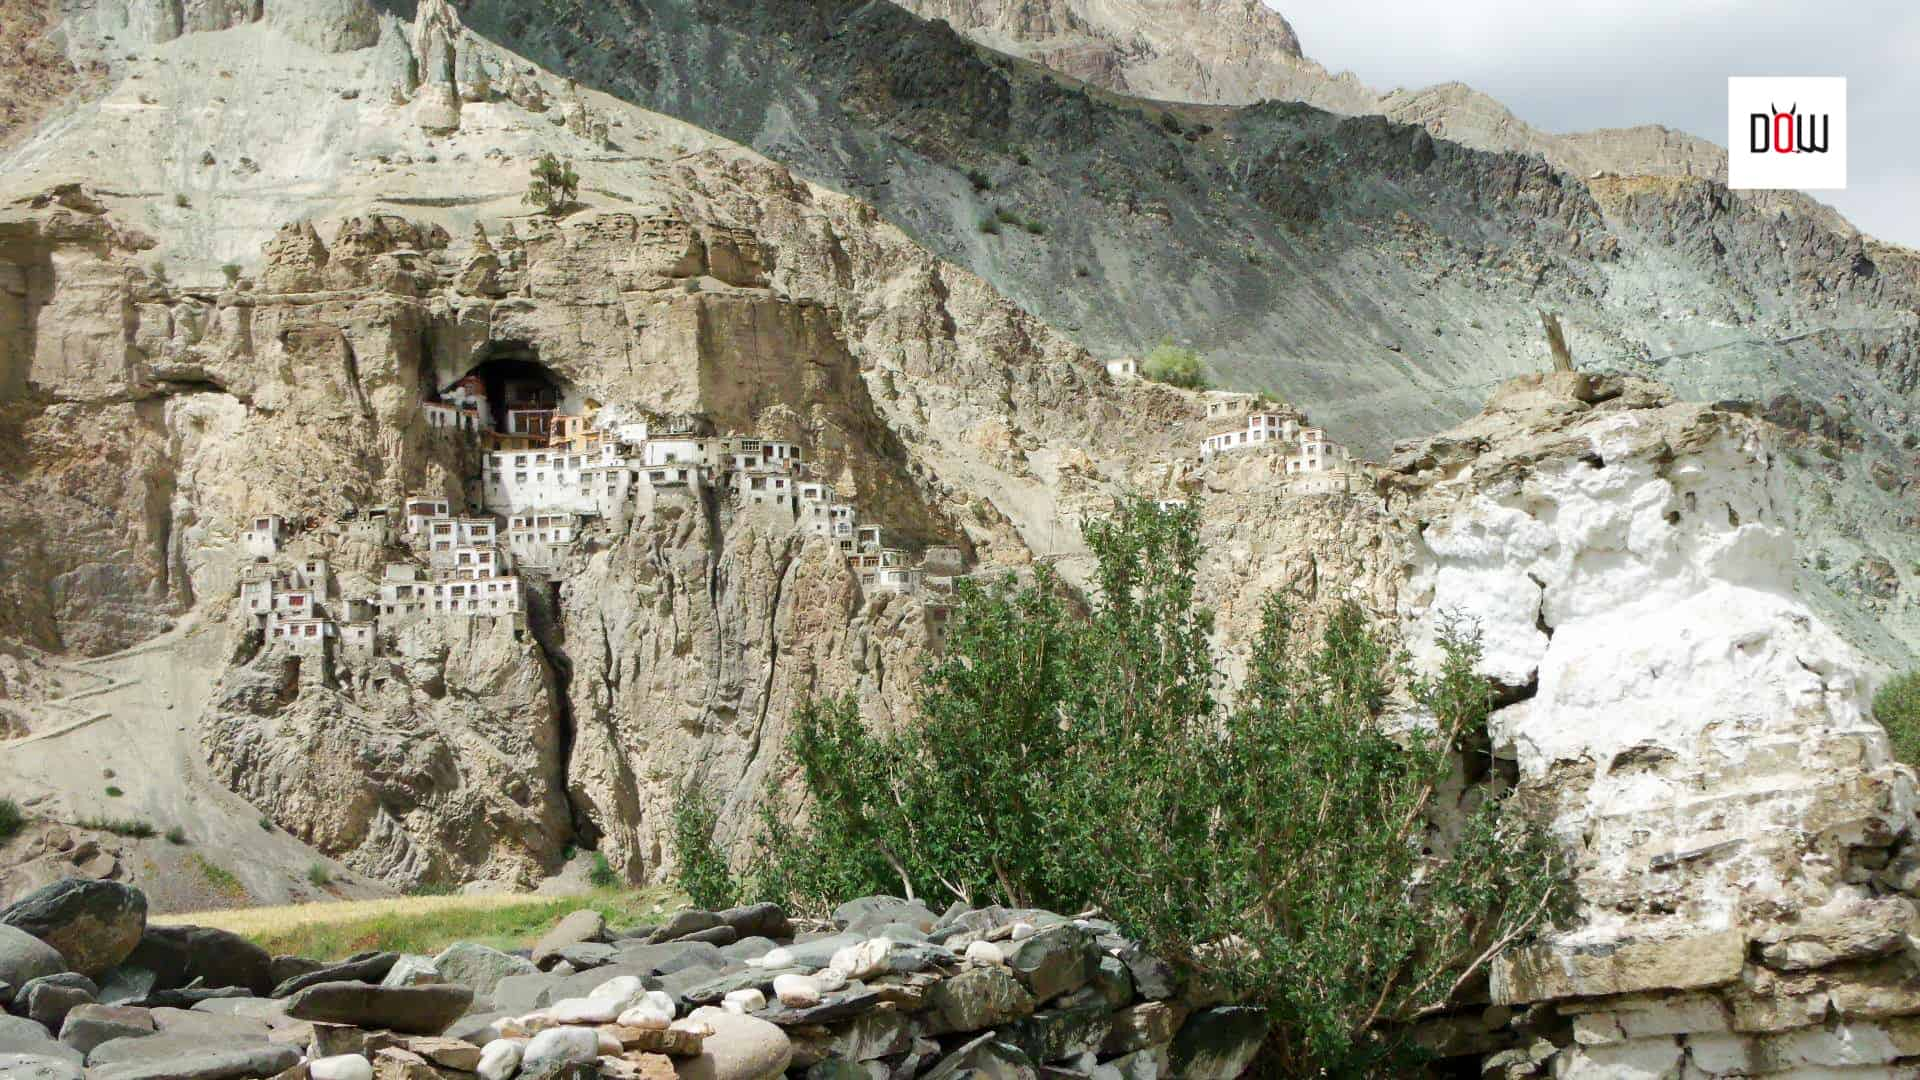 The Chortens outside the monastery